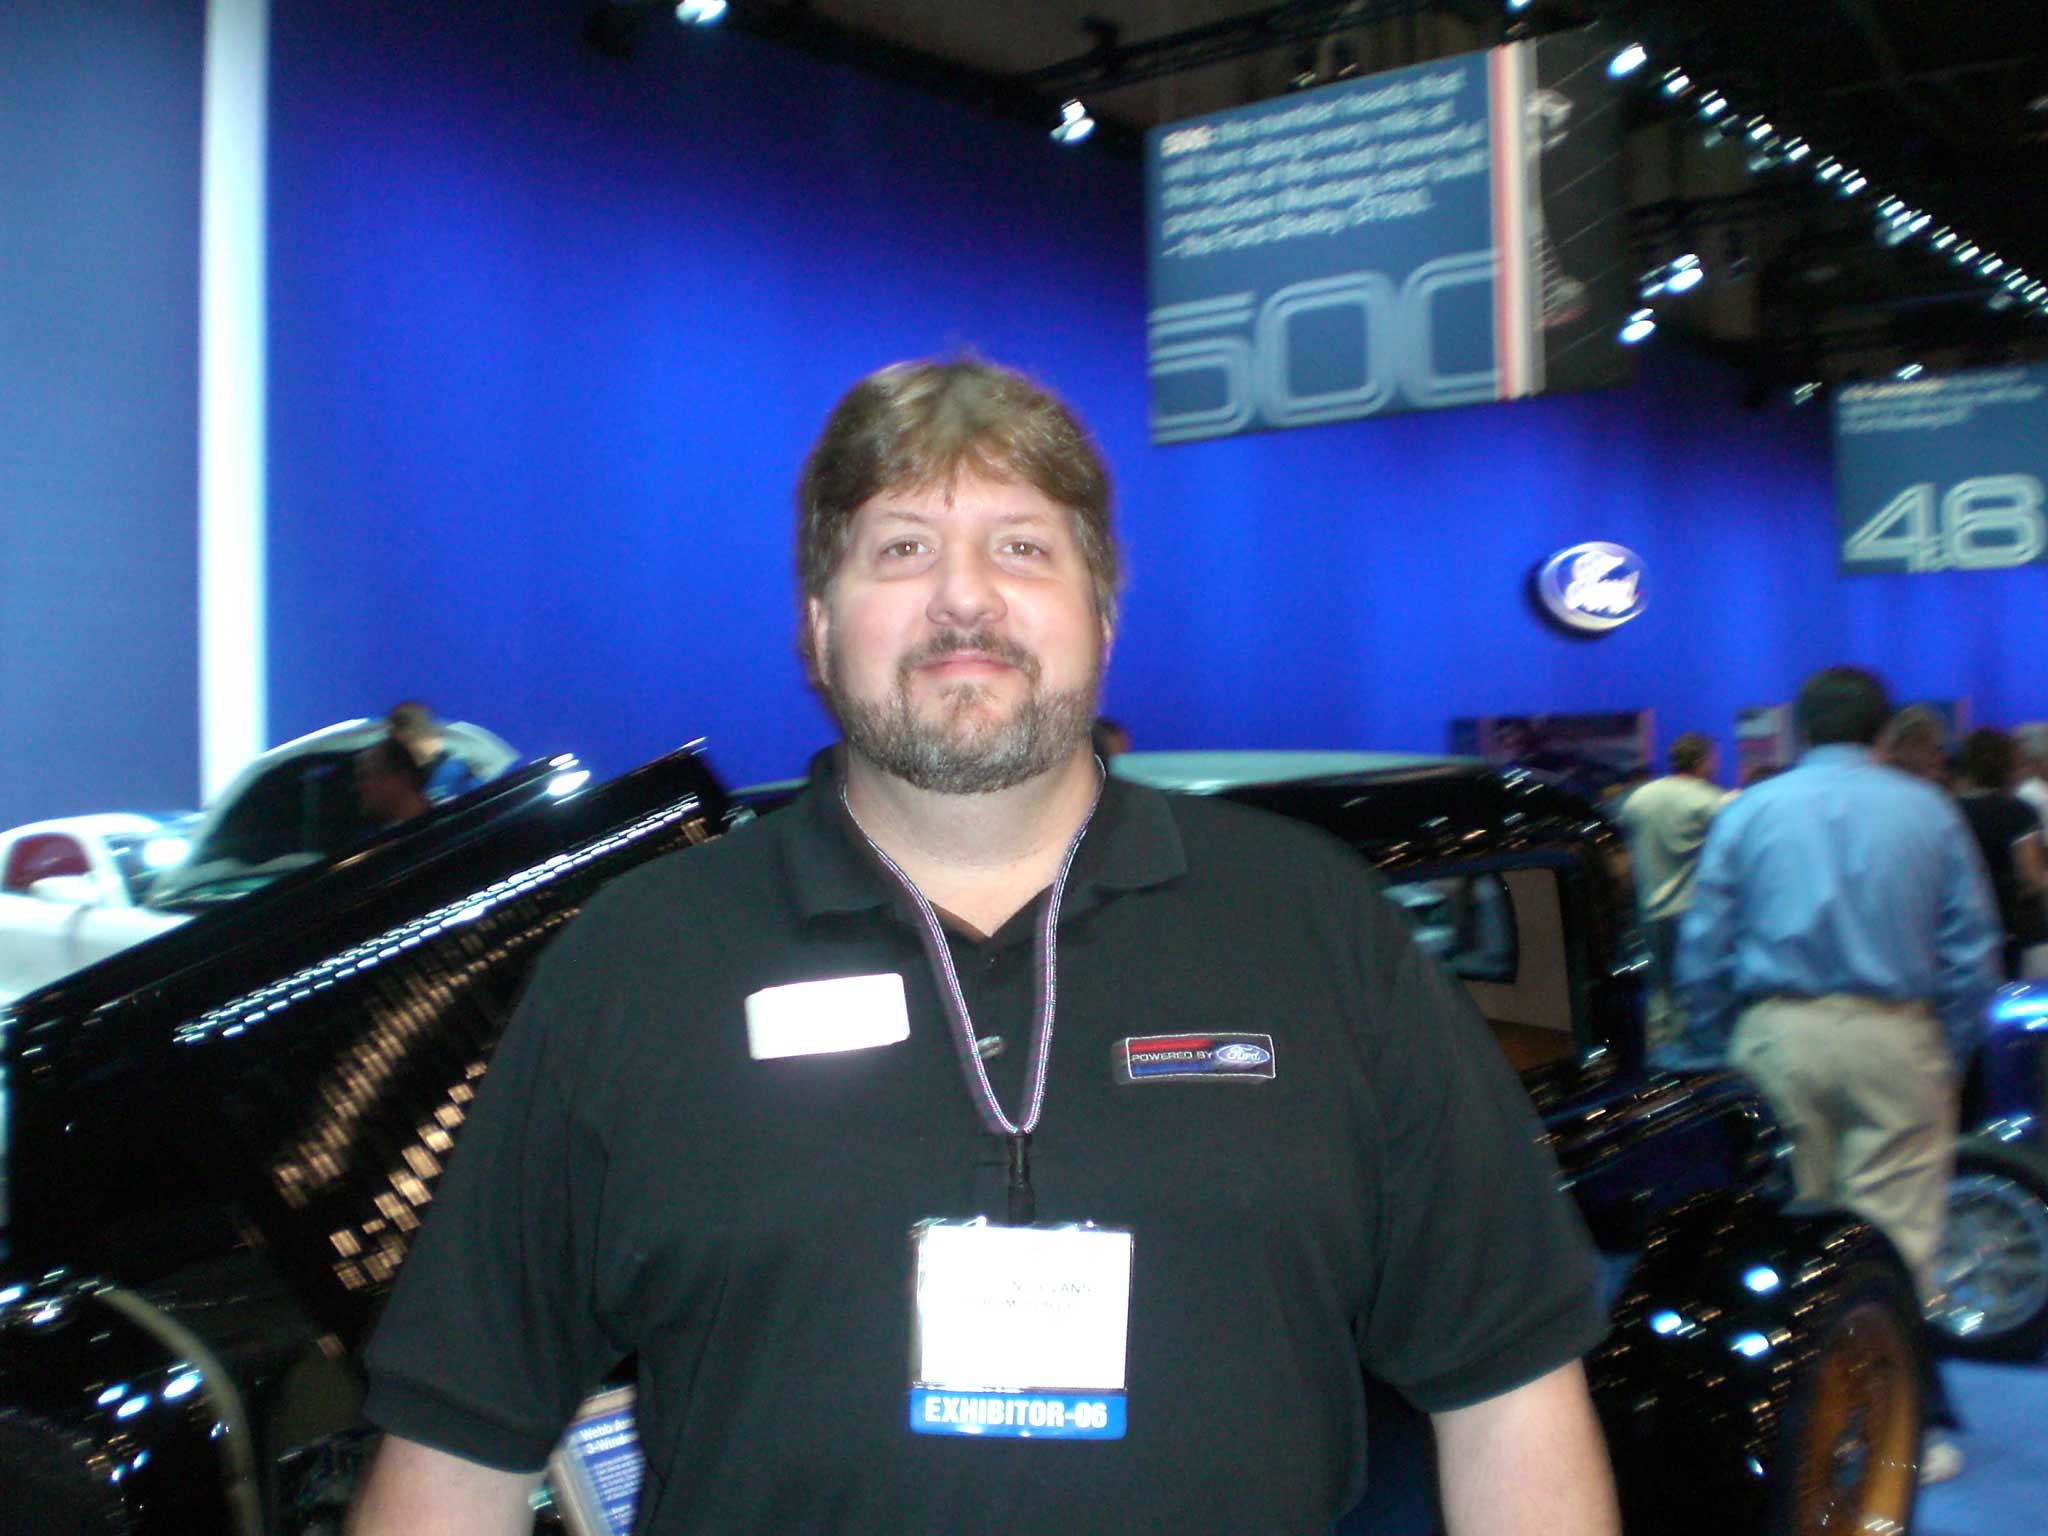 Ray Evans of Ford Motor Company uses K&N Filters on most special projects.